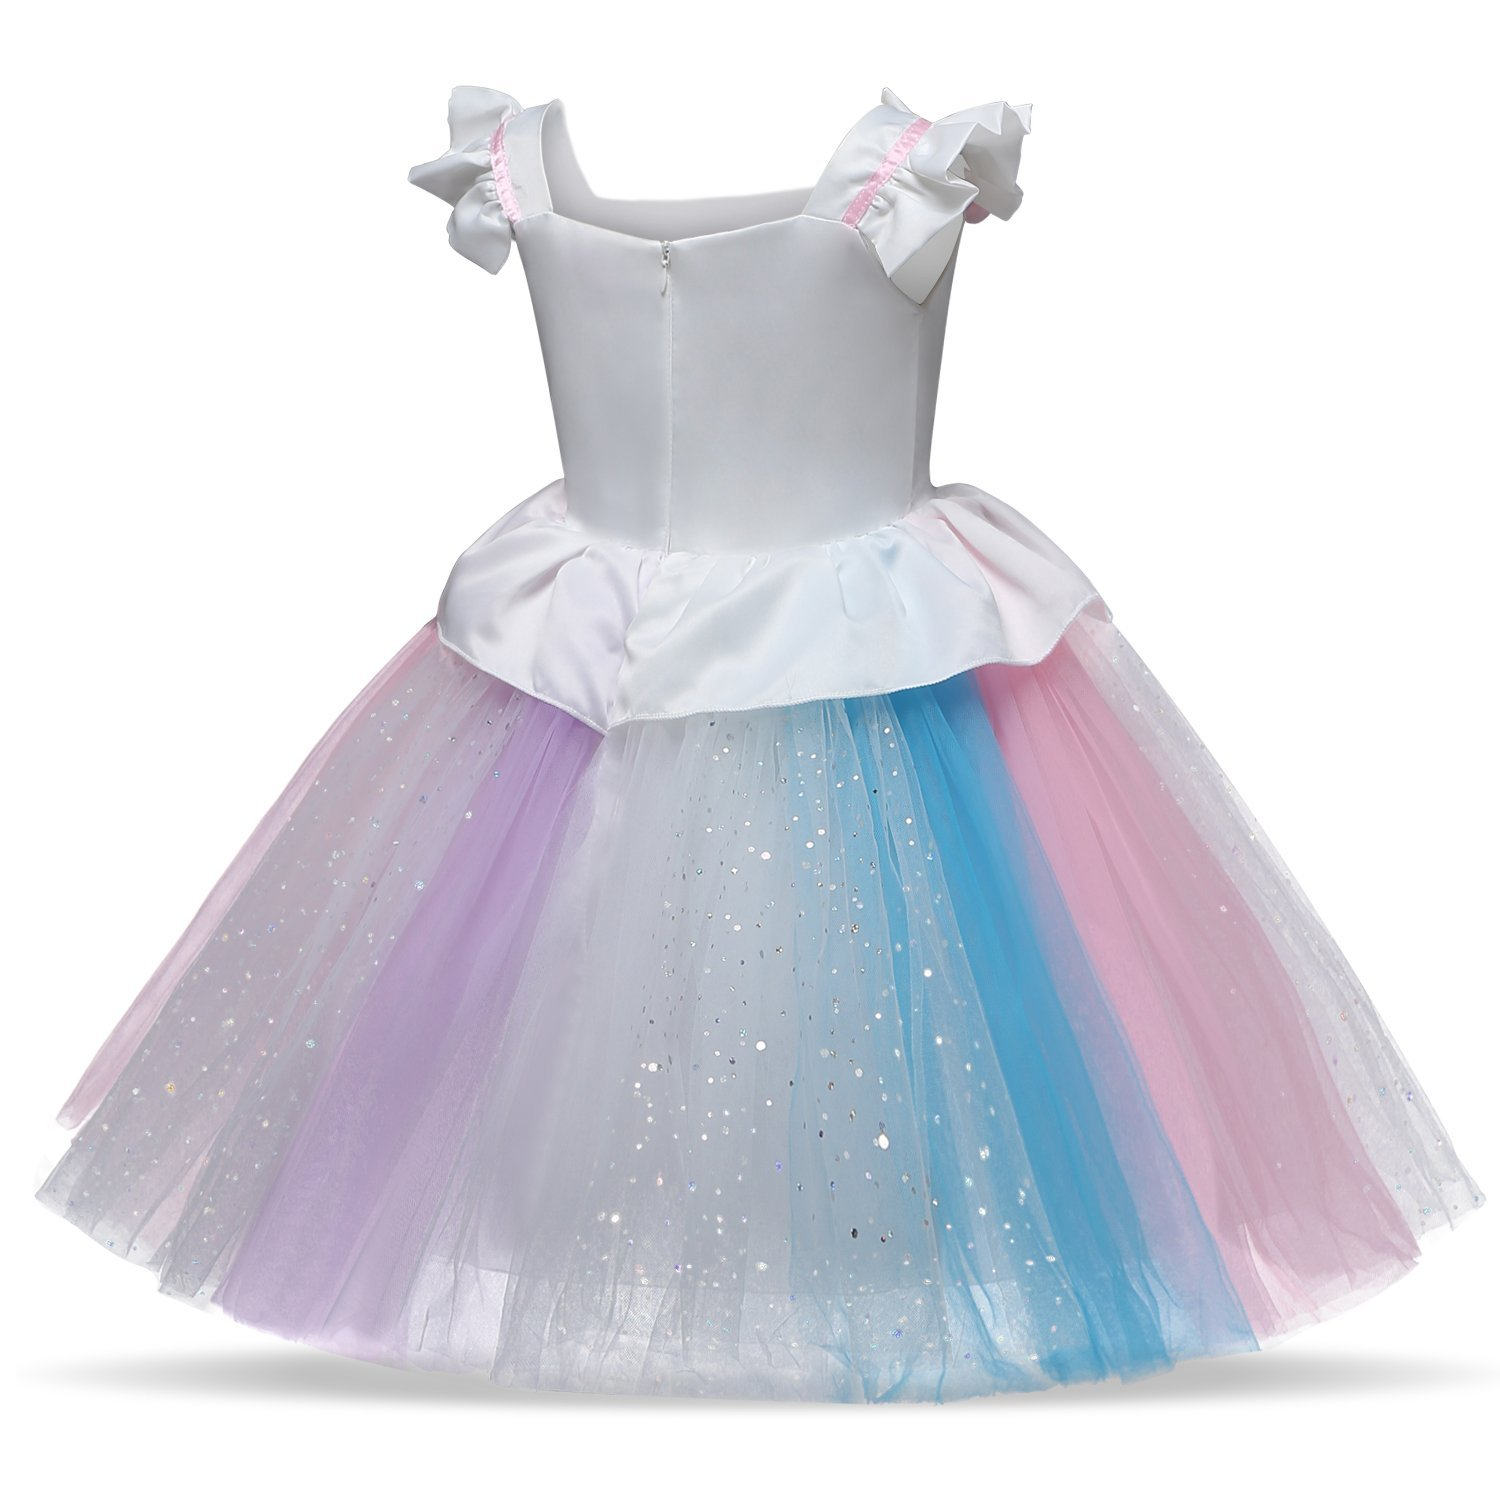 TTYAOVO Girl Flower Kids Unicorn Costume Lace Tulle Princess Pageant Party Dress